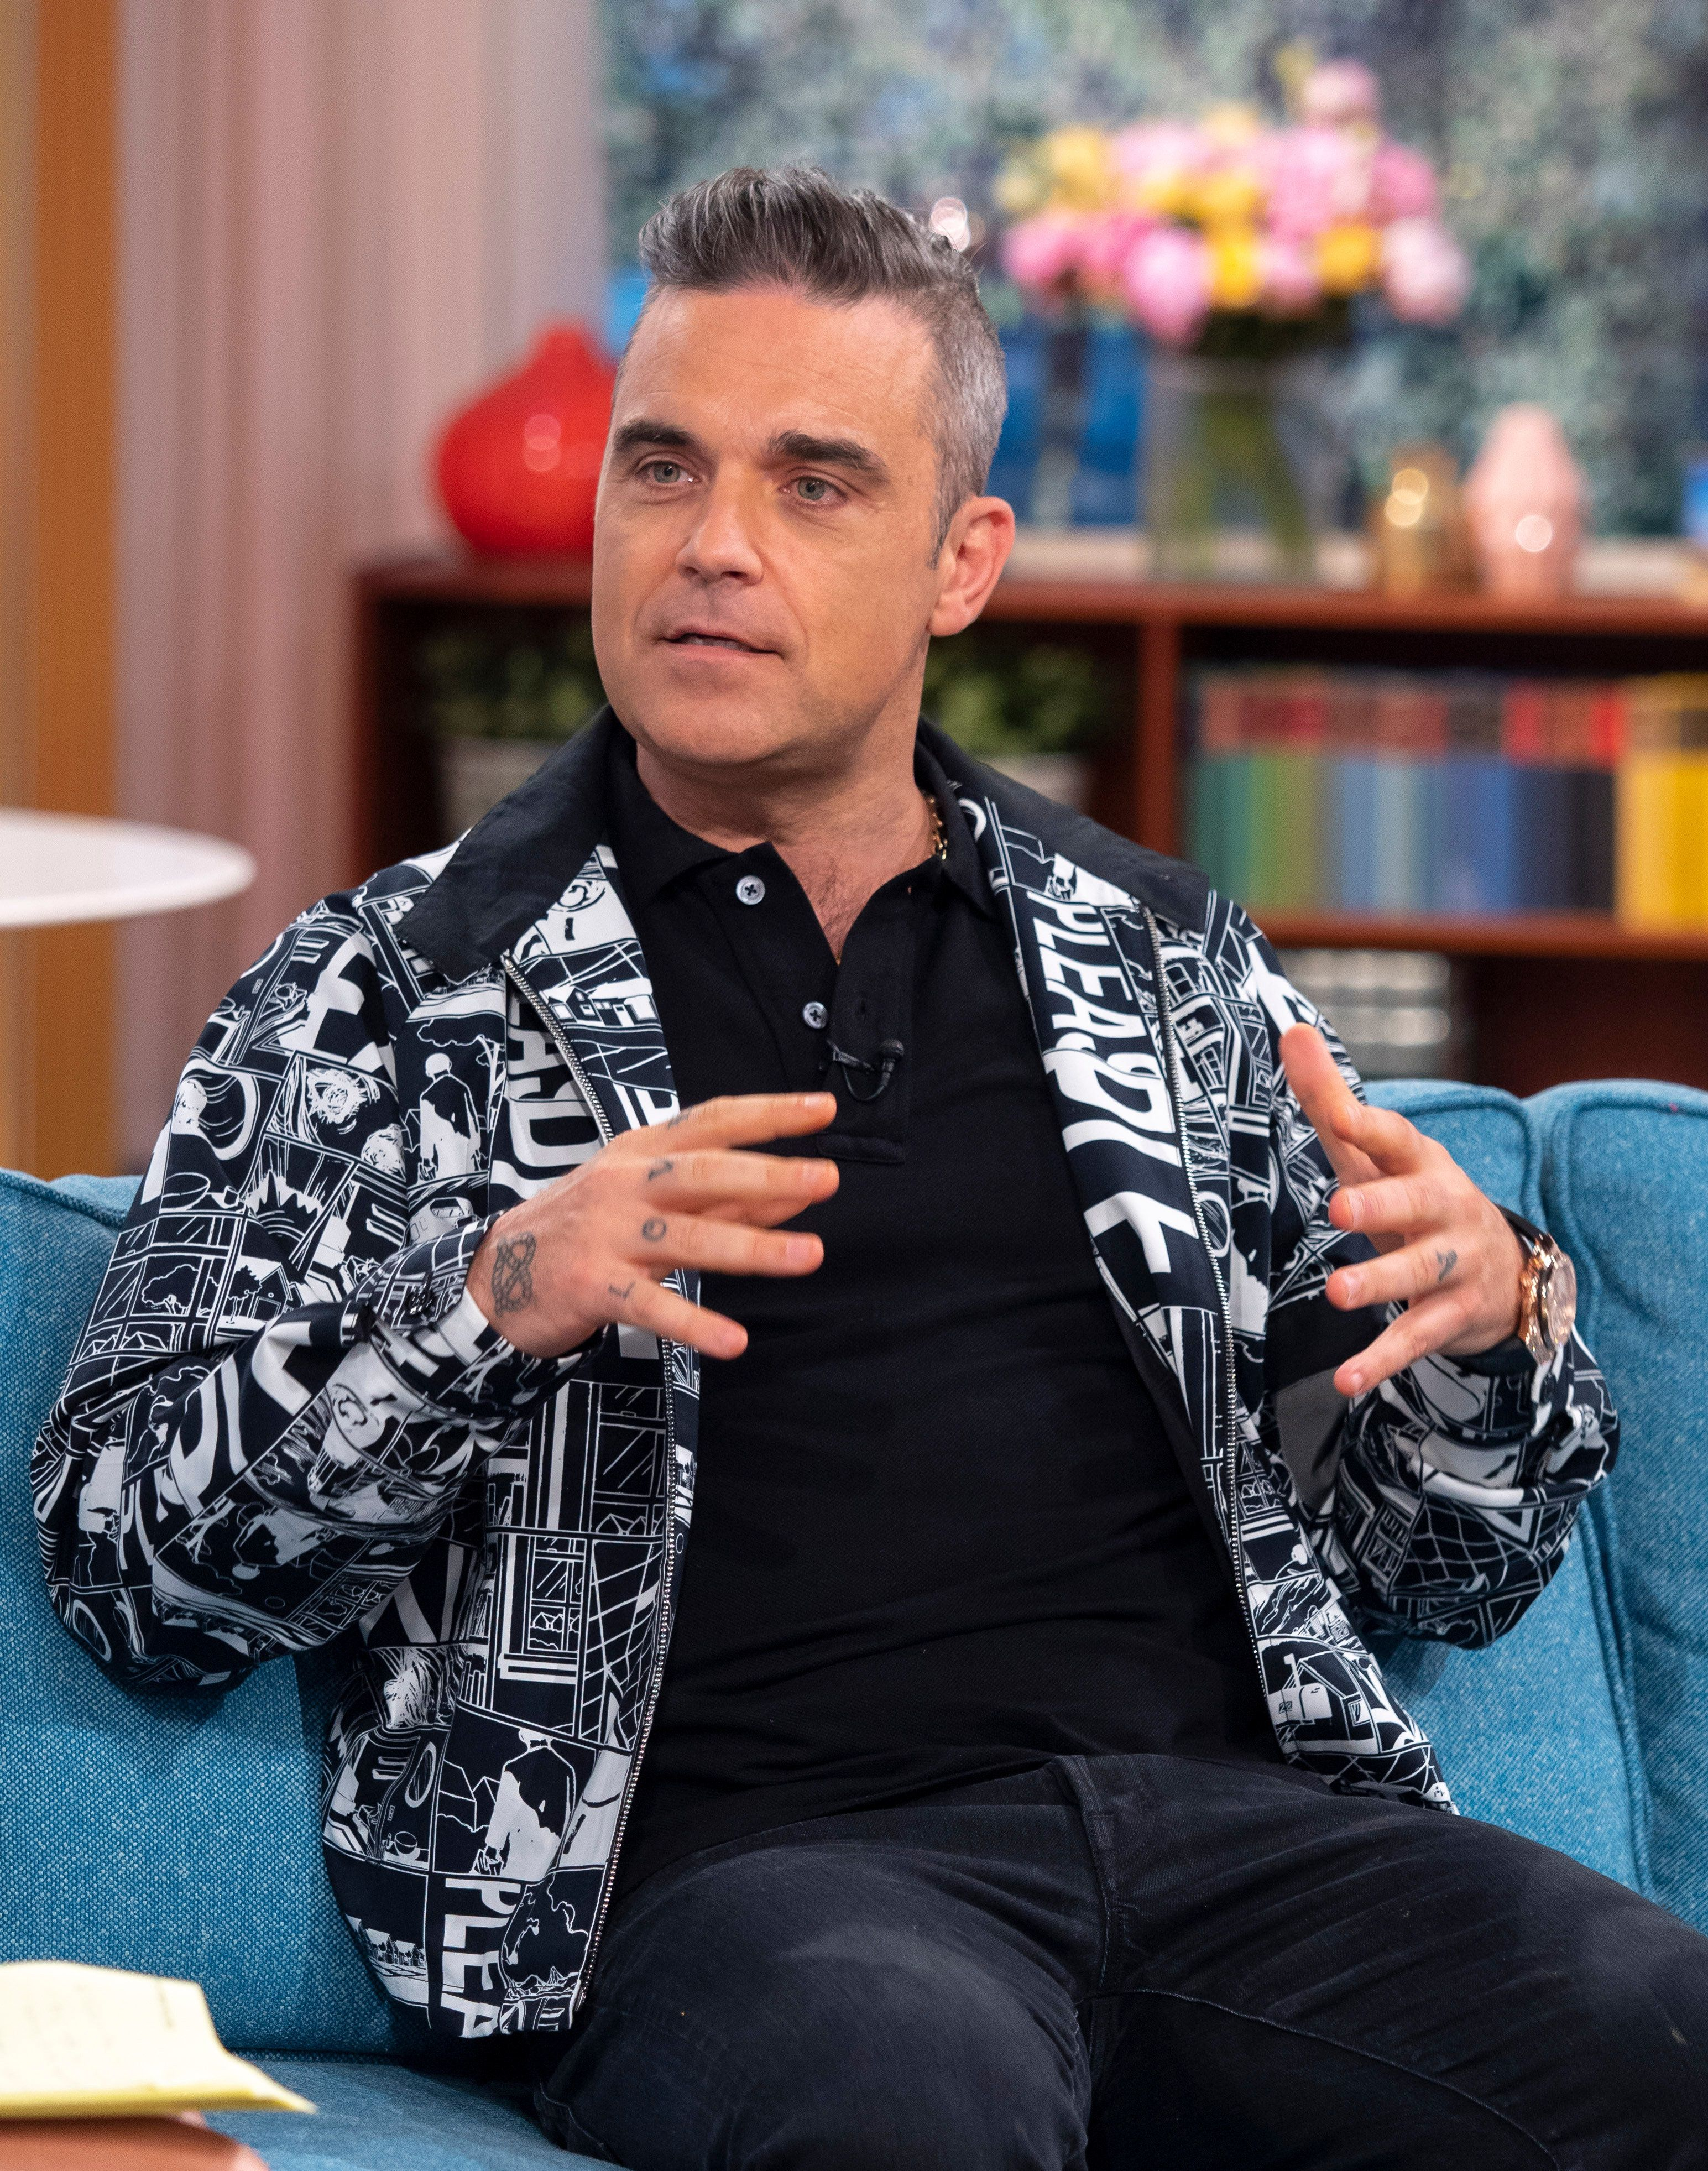 Robbie Williams Explains Why He Flipped The Bird During World Cup Opening Ceremony